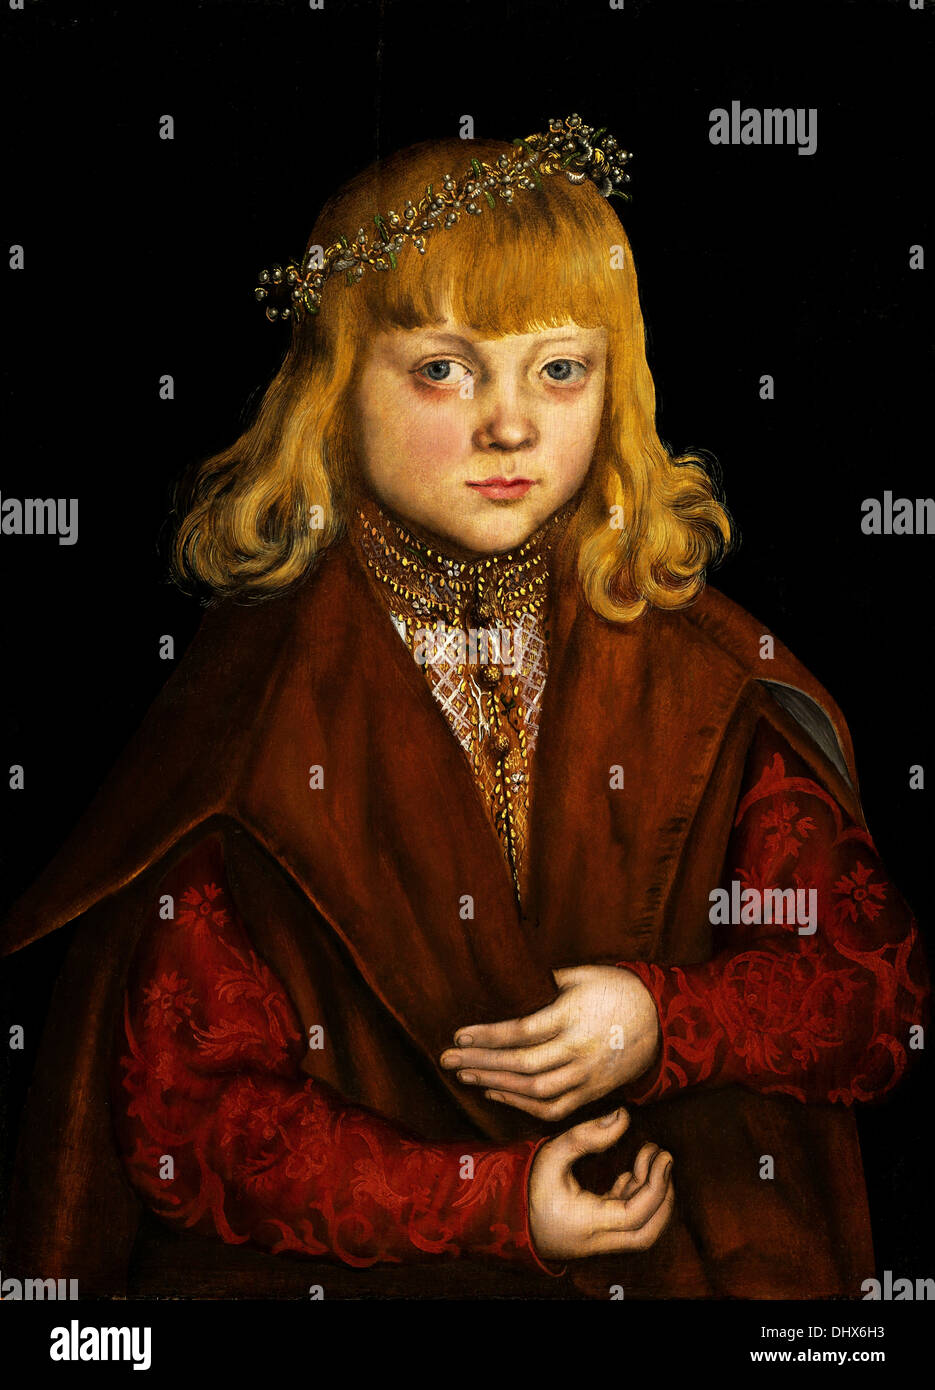 A Prince of Saxony - by Lucas Cranach the Elder, 1517 - Stock Image